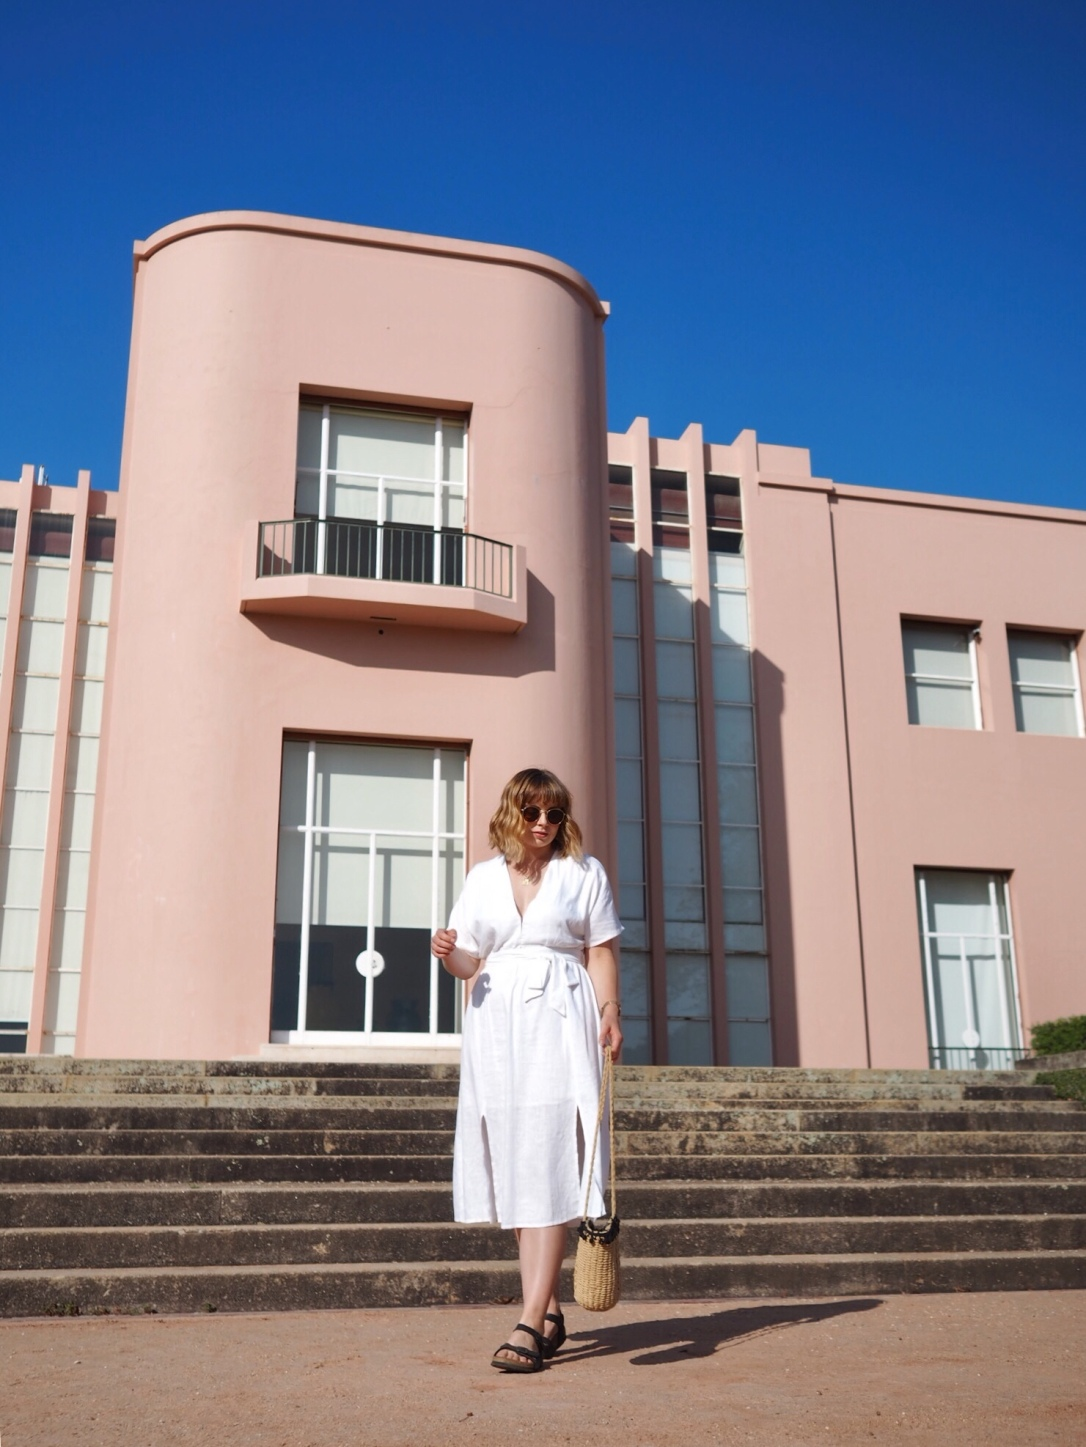 Museu Serralves - things to do in Porto